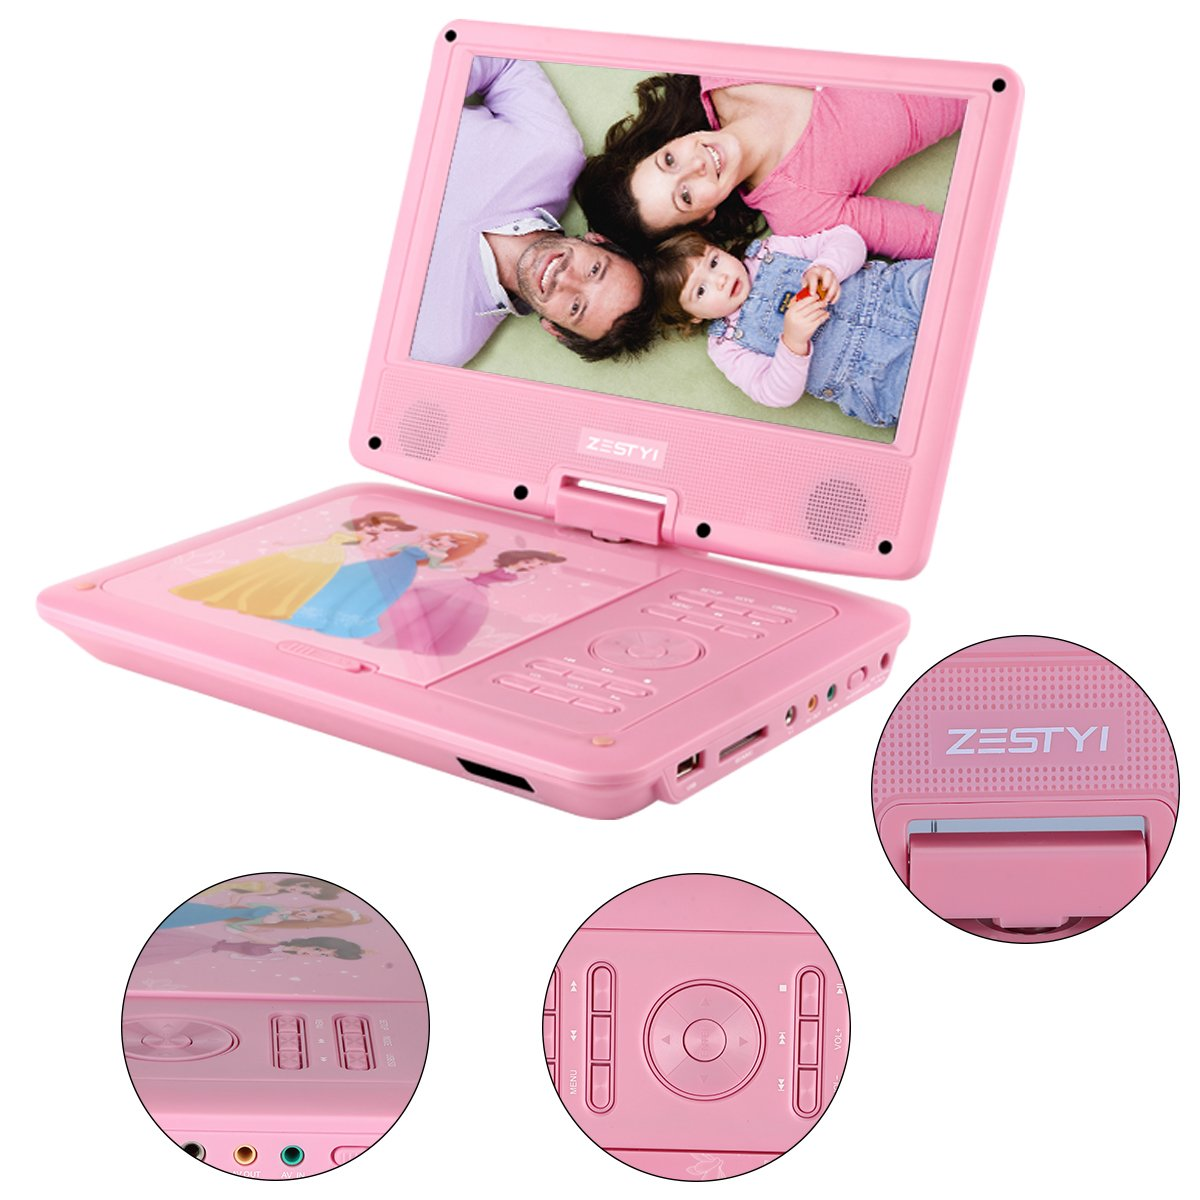 ZESTYI 9'' Portable DVD Player for Kids with Car Headrest Mount Holder, Rechargeable Battery, Wall Charger, Car Charger, SD Card Slot, USB Port & Swivel Screen (Pink)